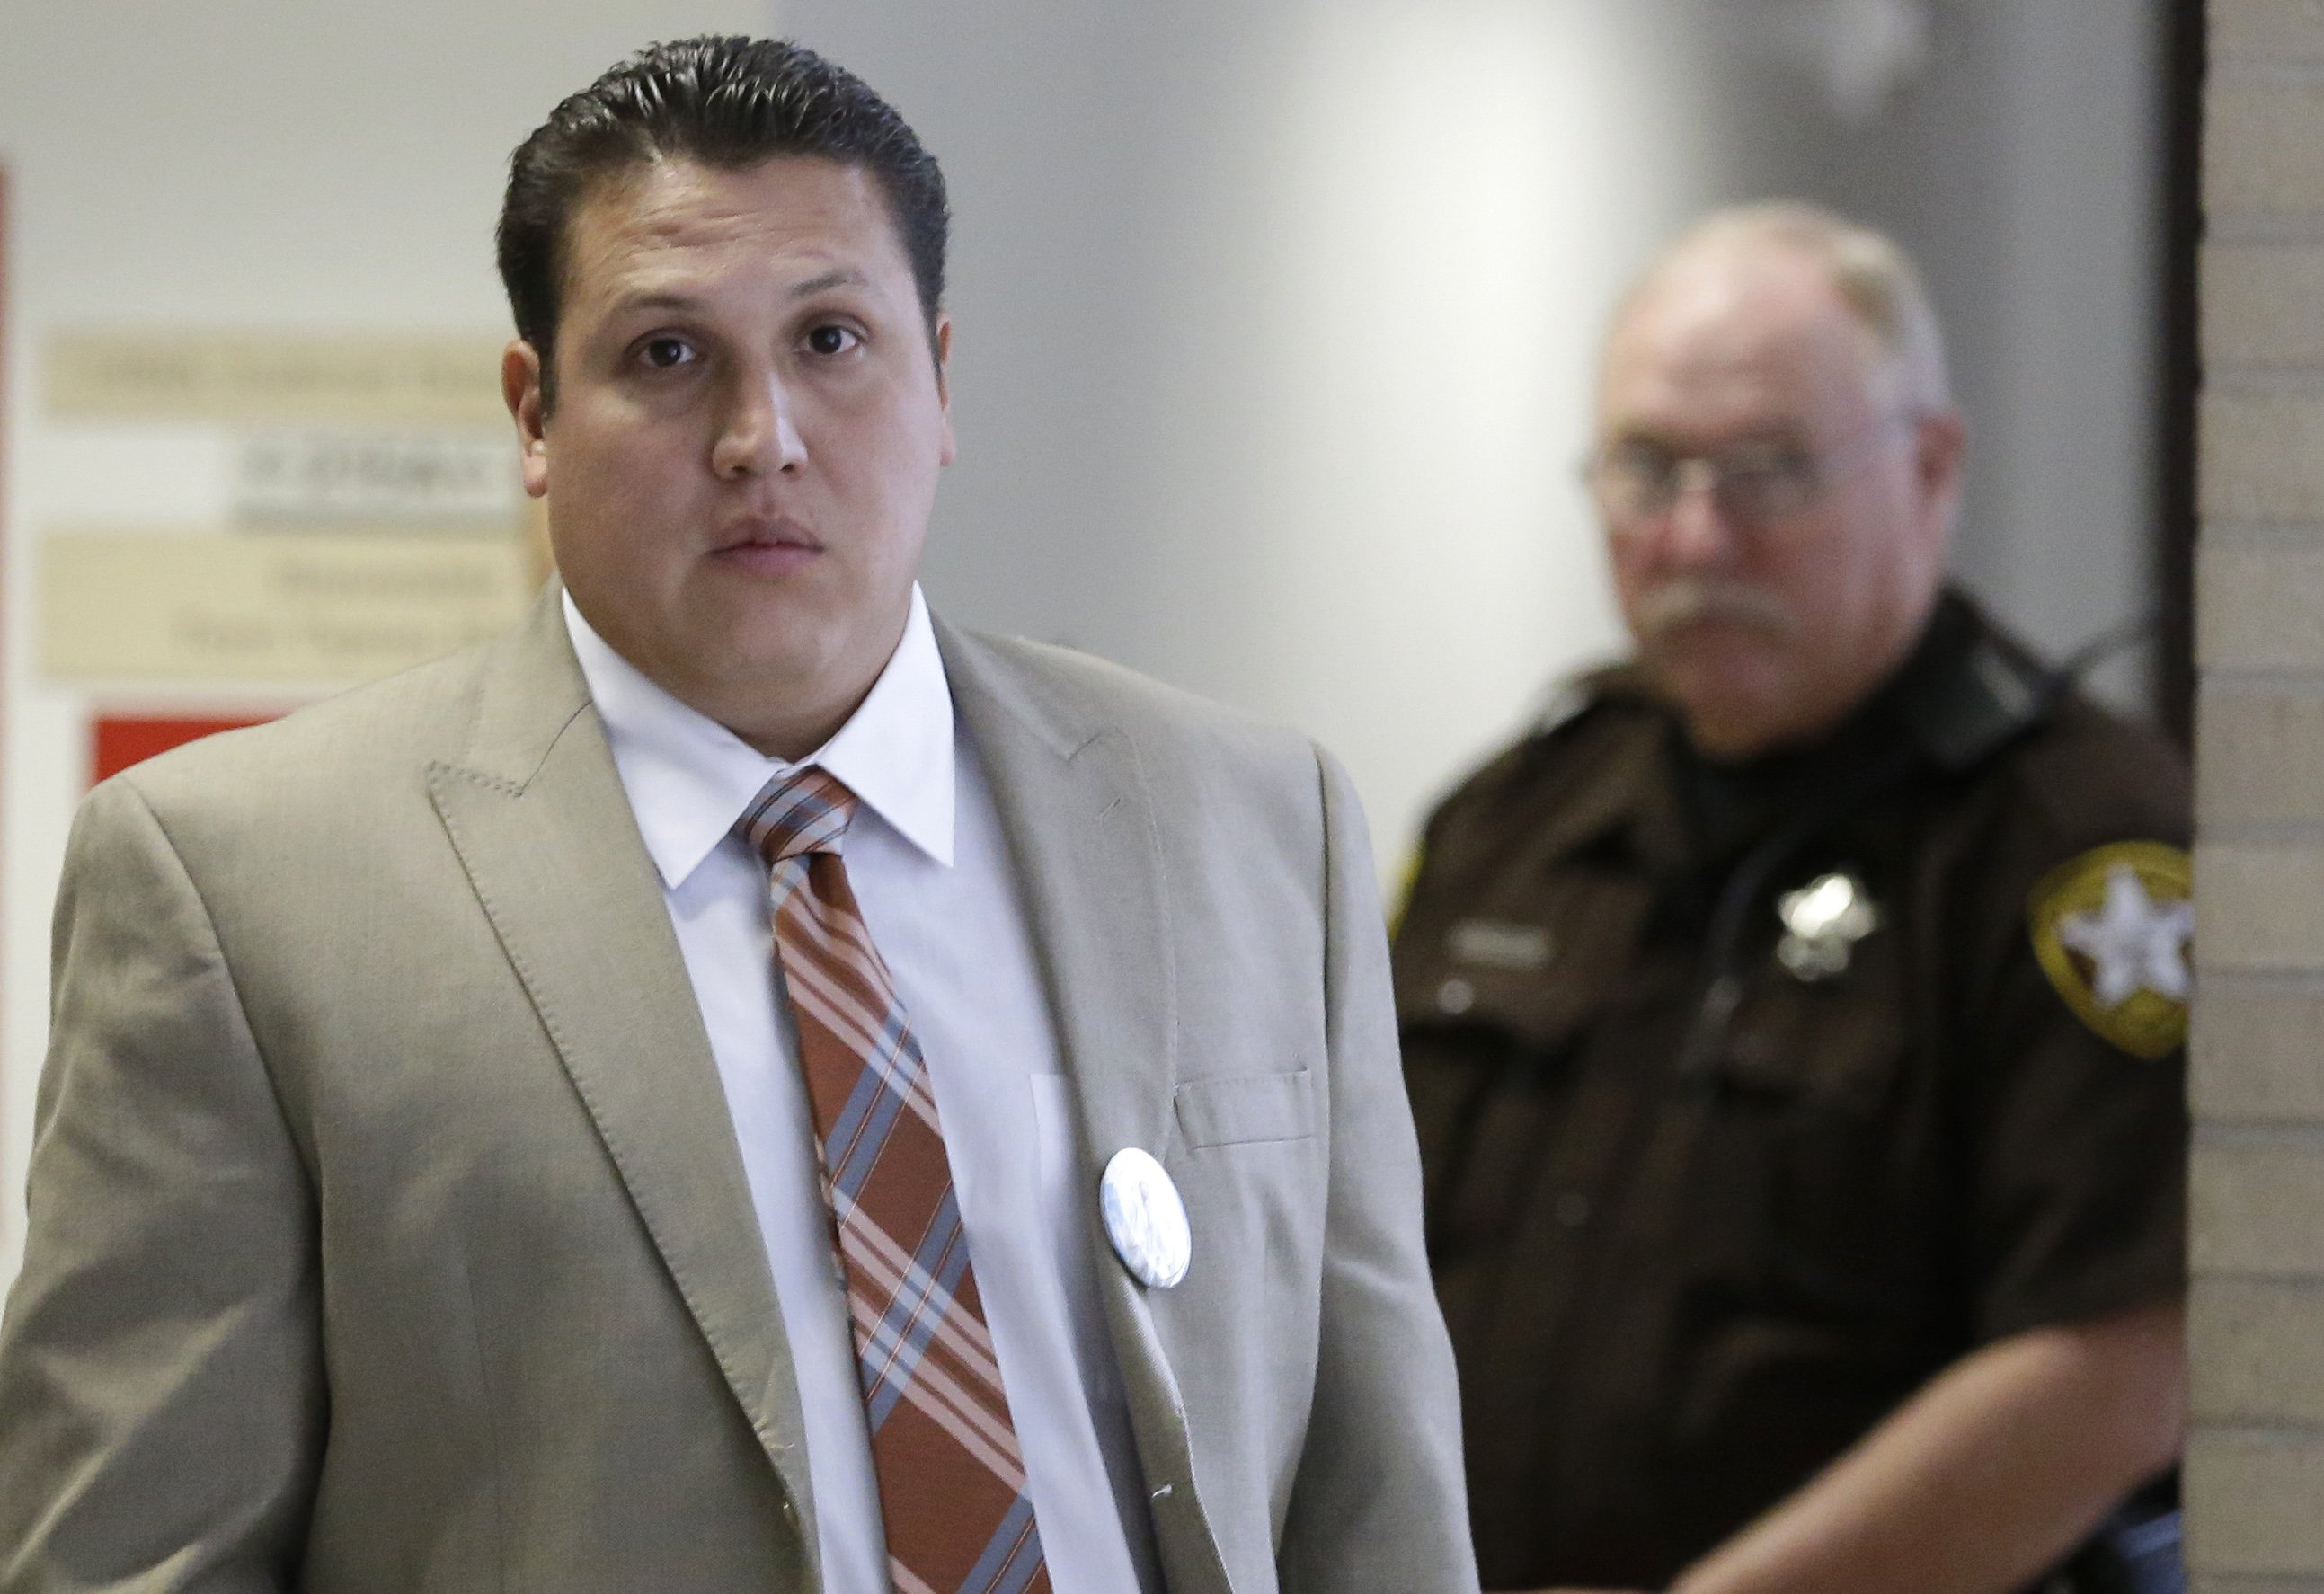 David Barajas leaves the courtroom during a break in his murder trial Aug. 20, 2014, in Angleton, Texas. B